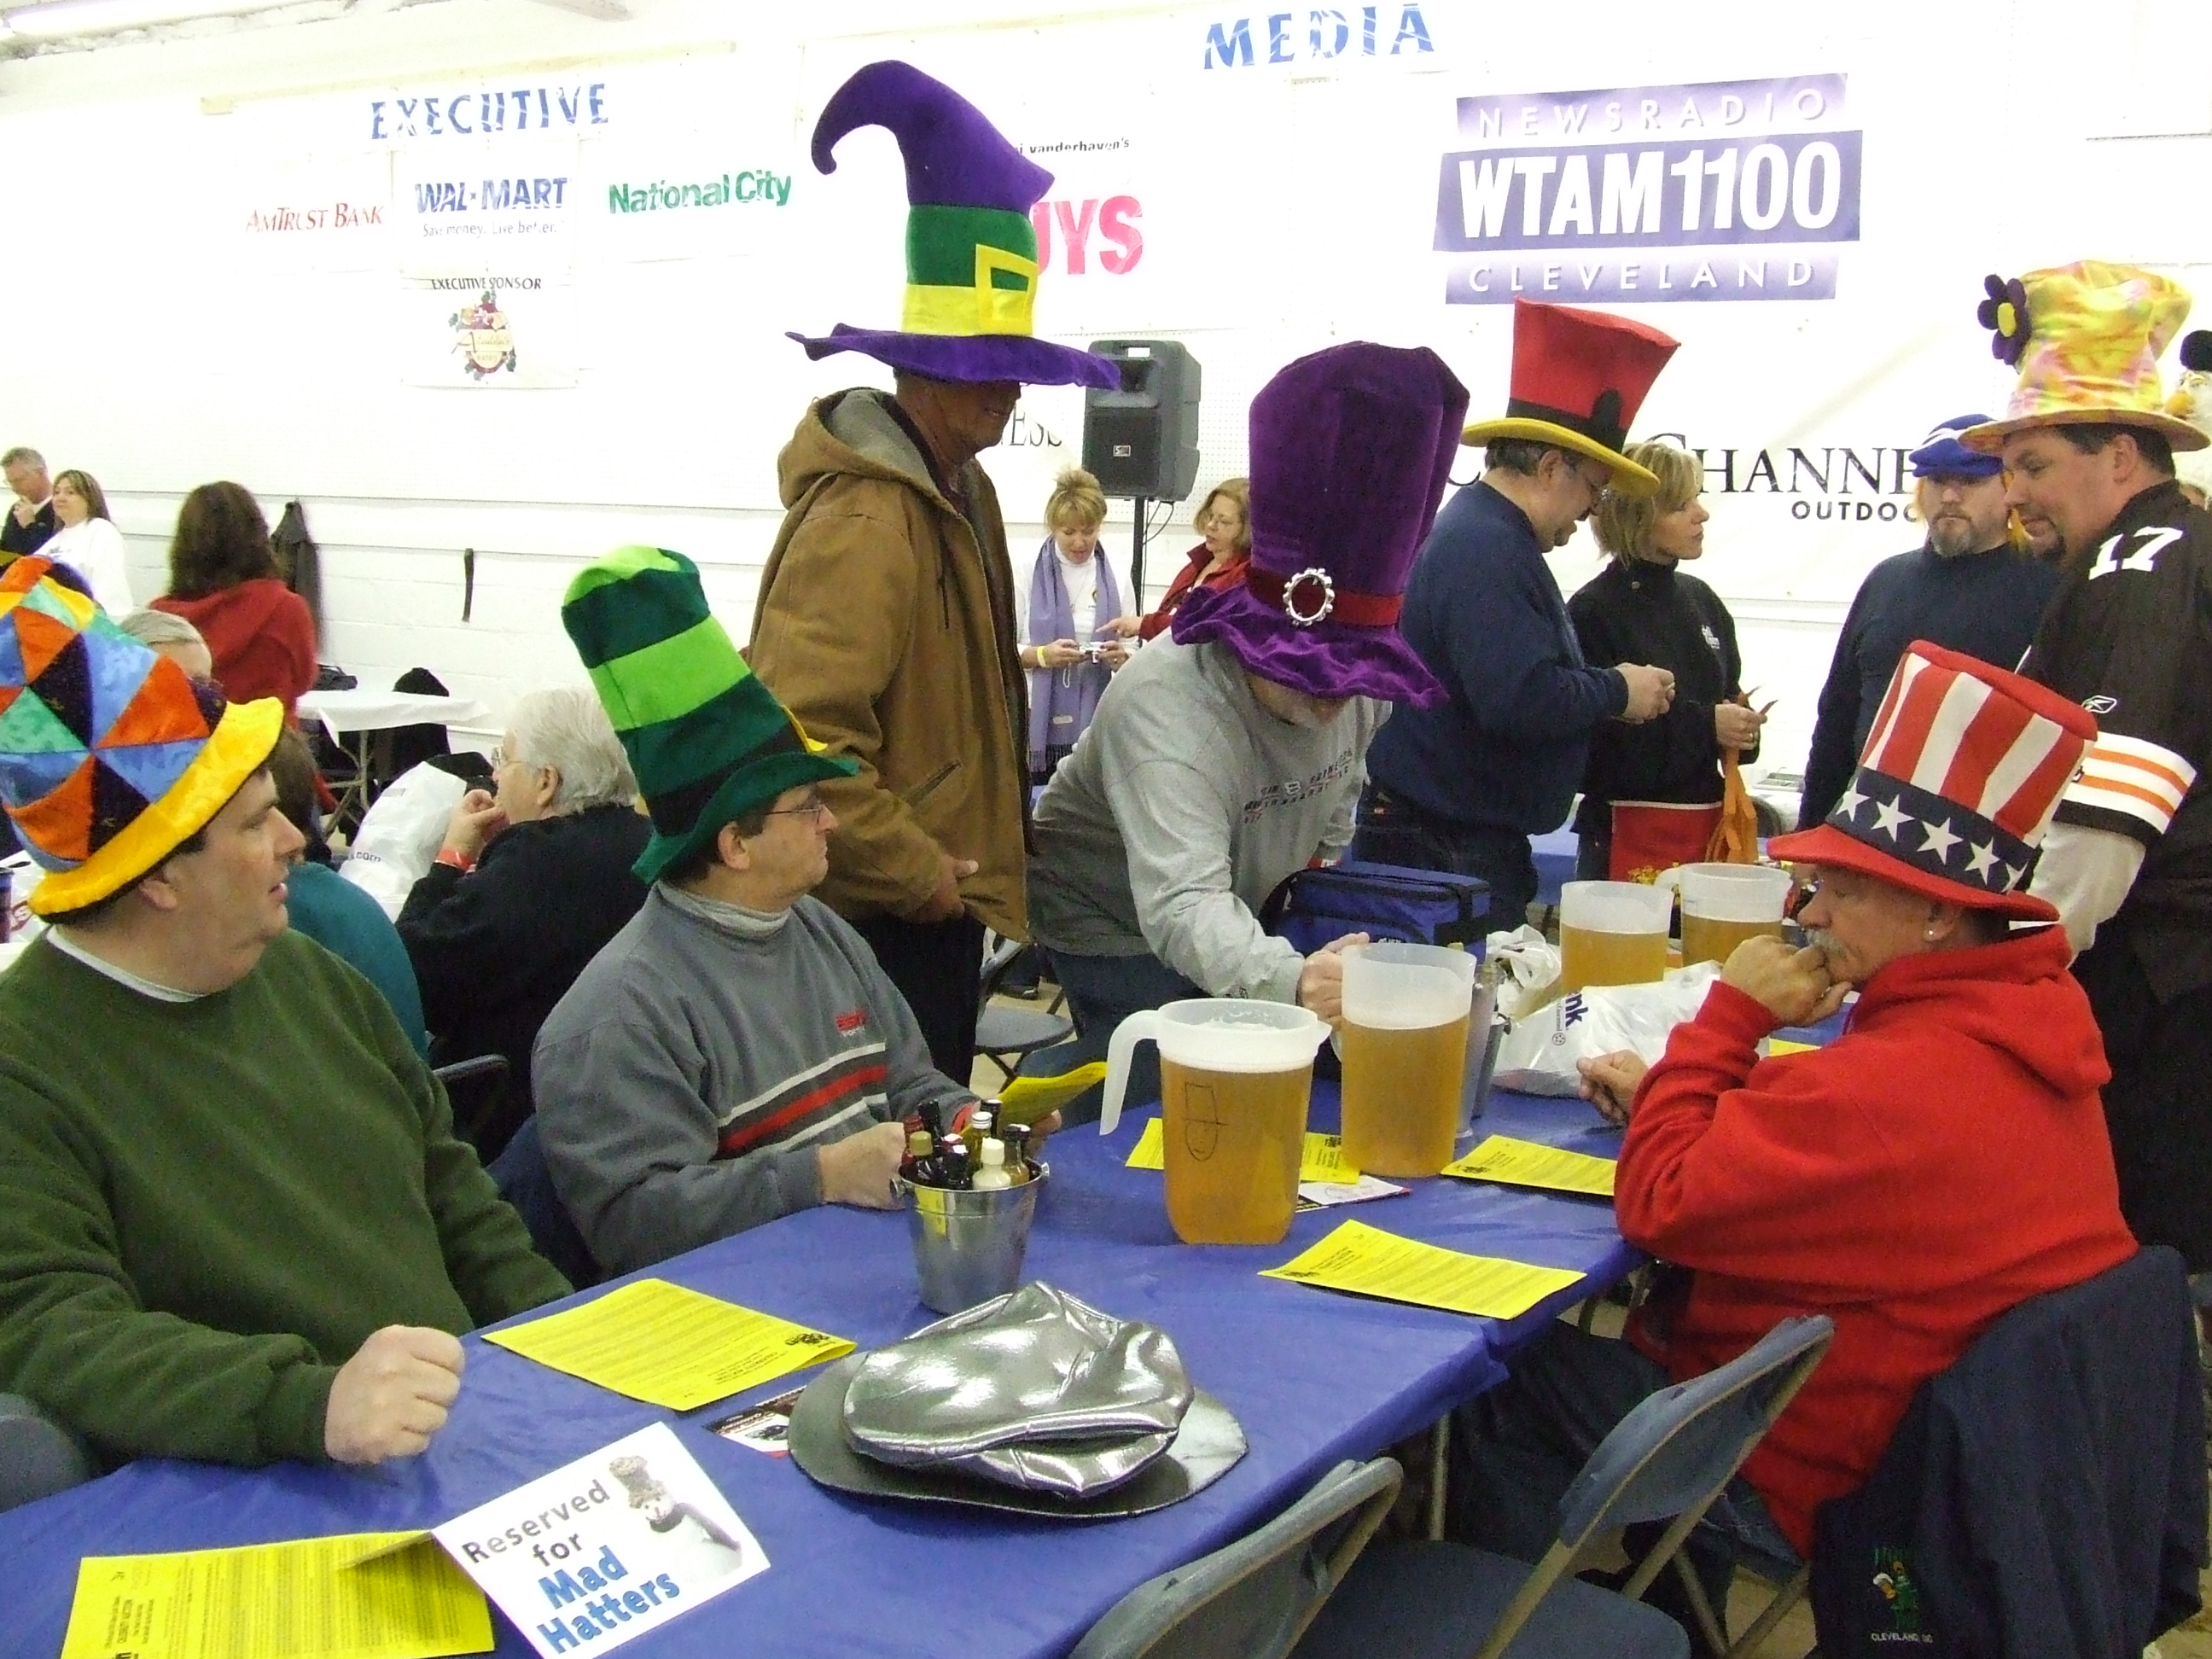 PHOTO : The Hat Guys show up every year to bring controlled chaos to